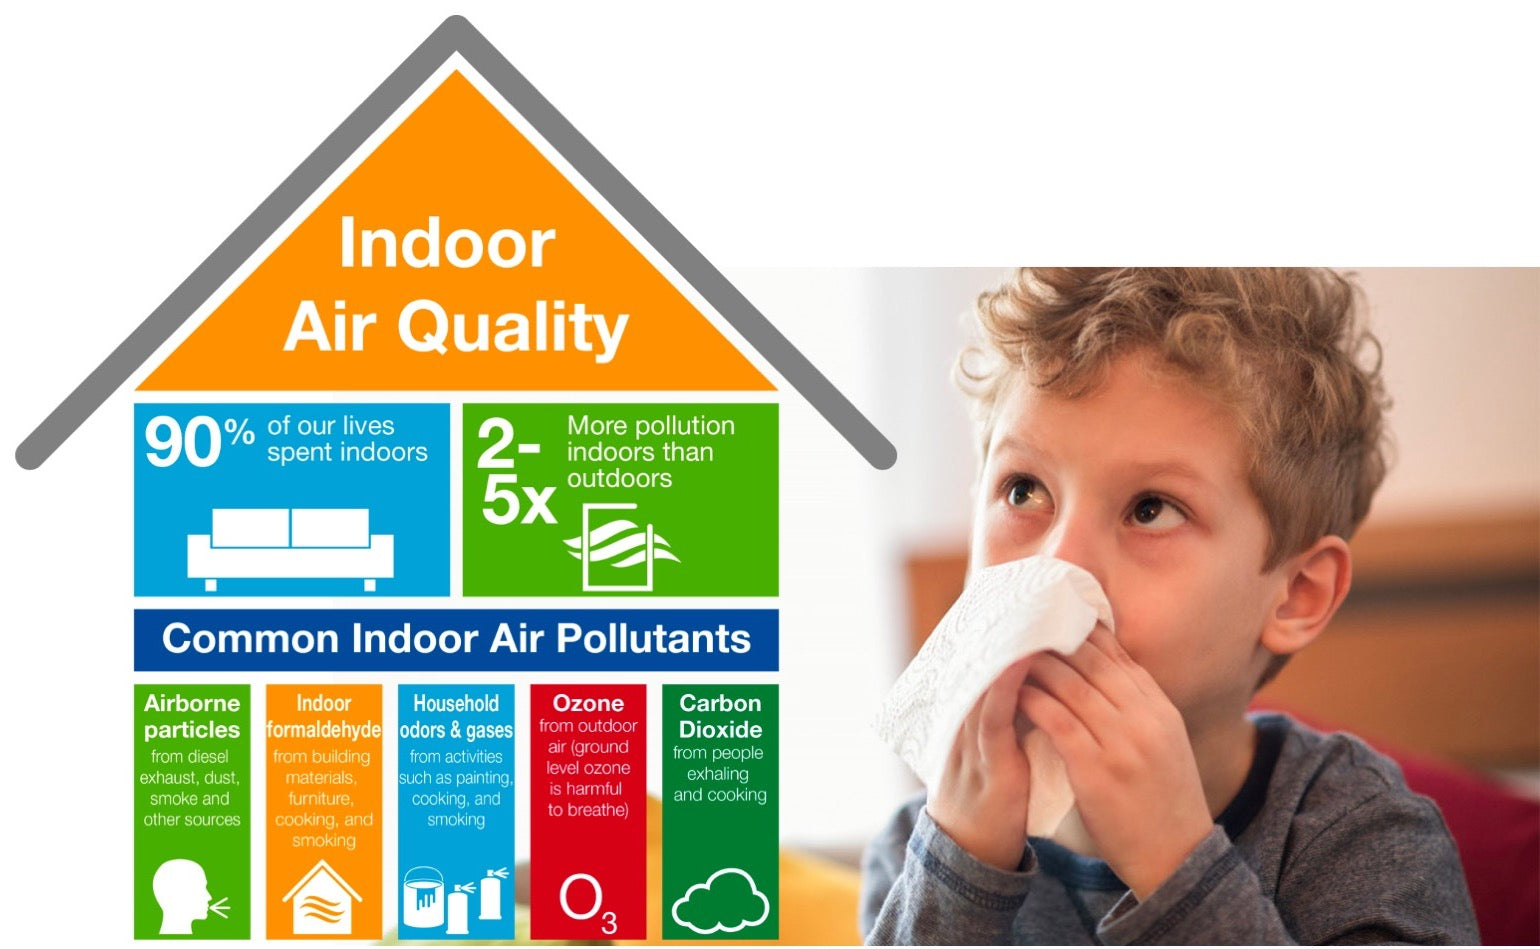 indoor air quality and children